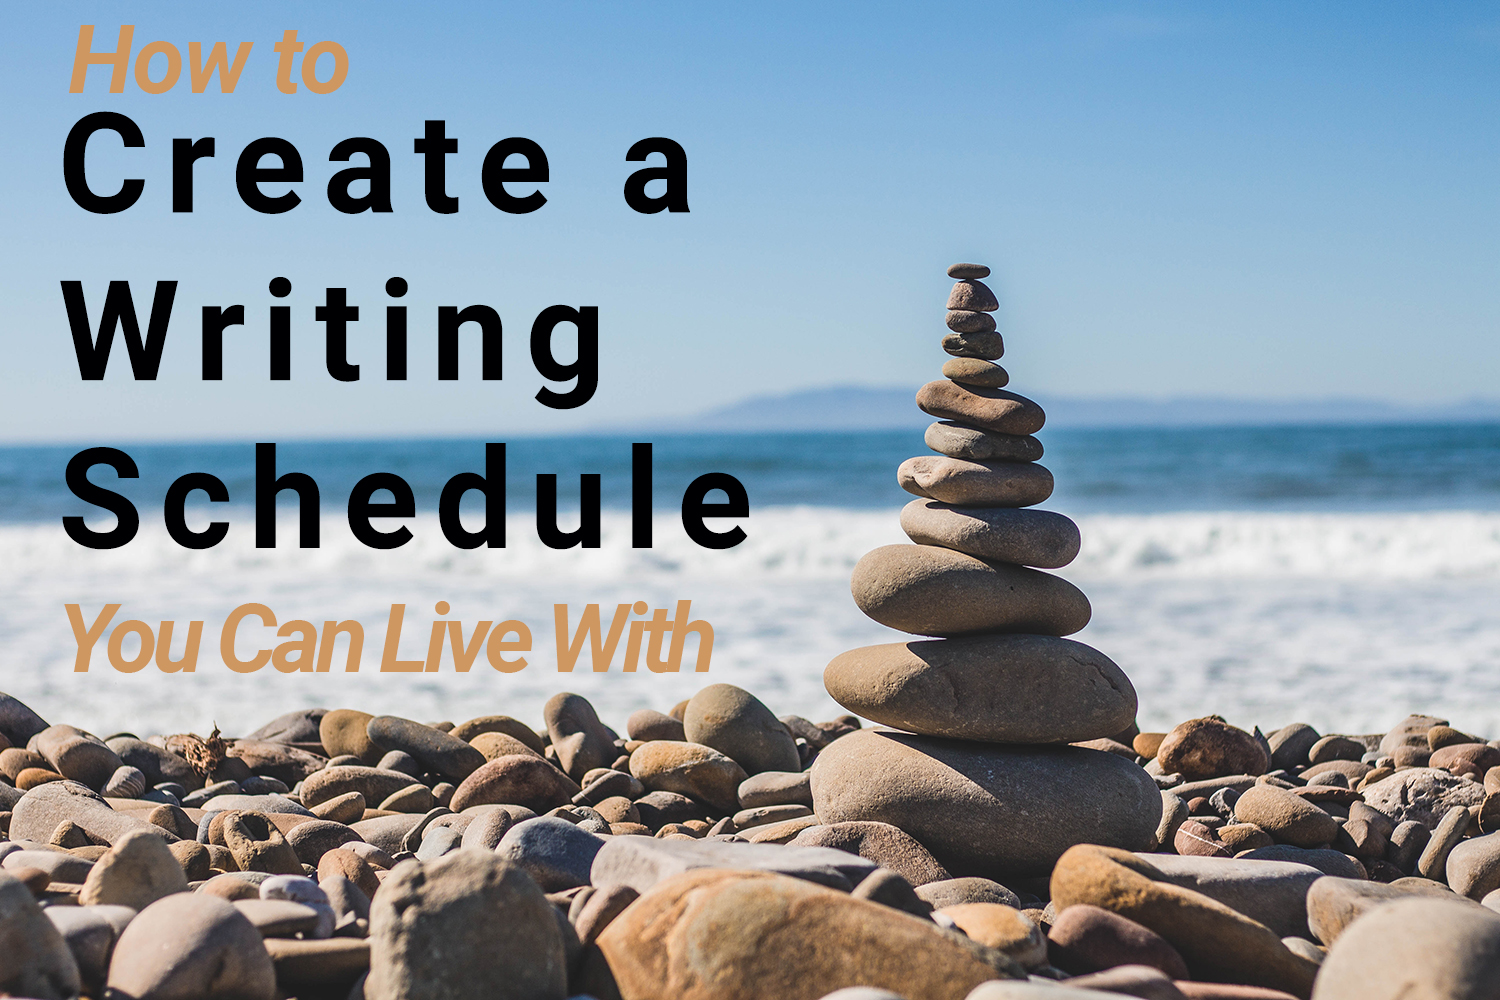 How to Create A Writing Schedule You Can Live With